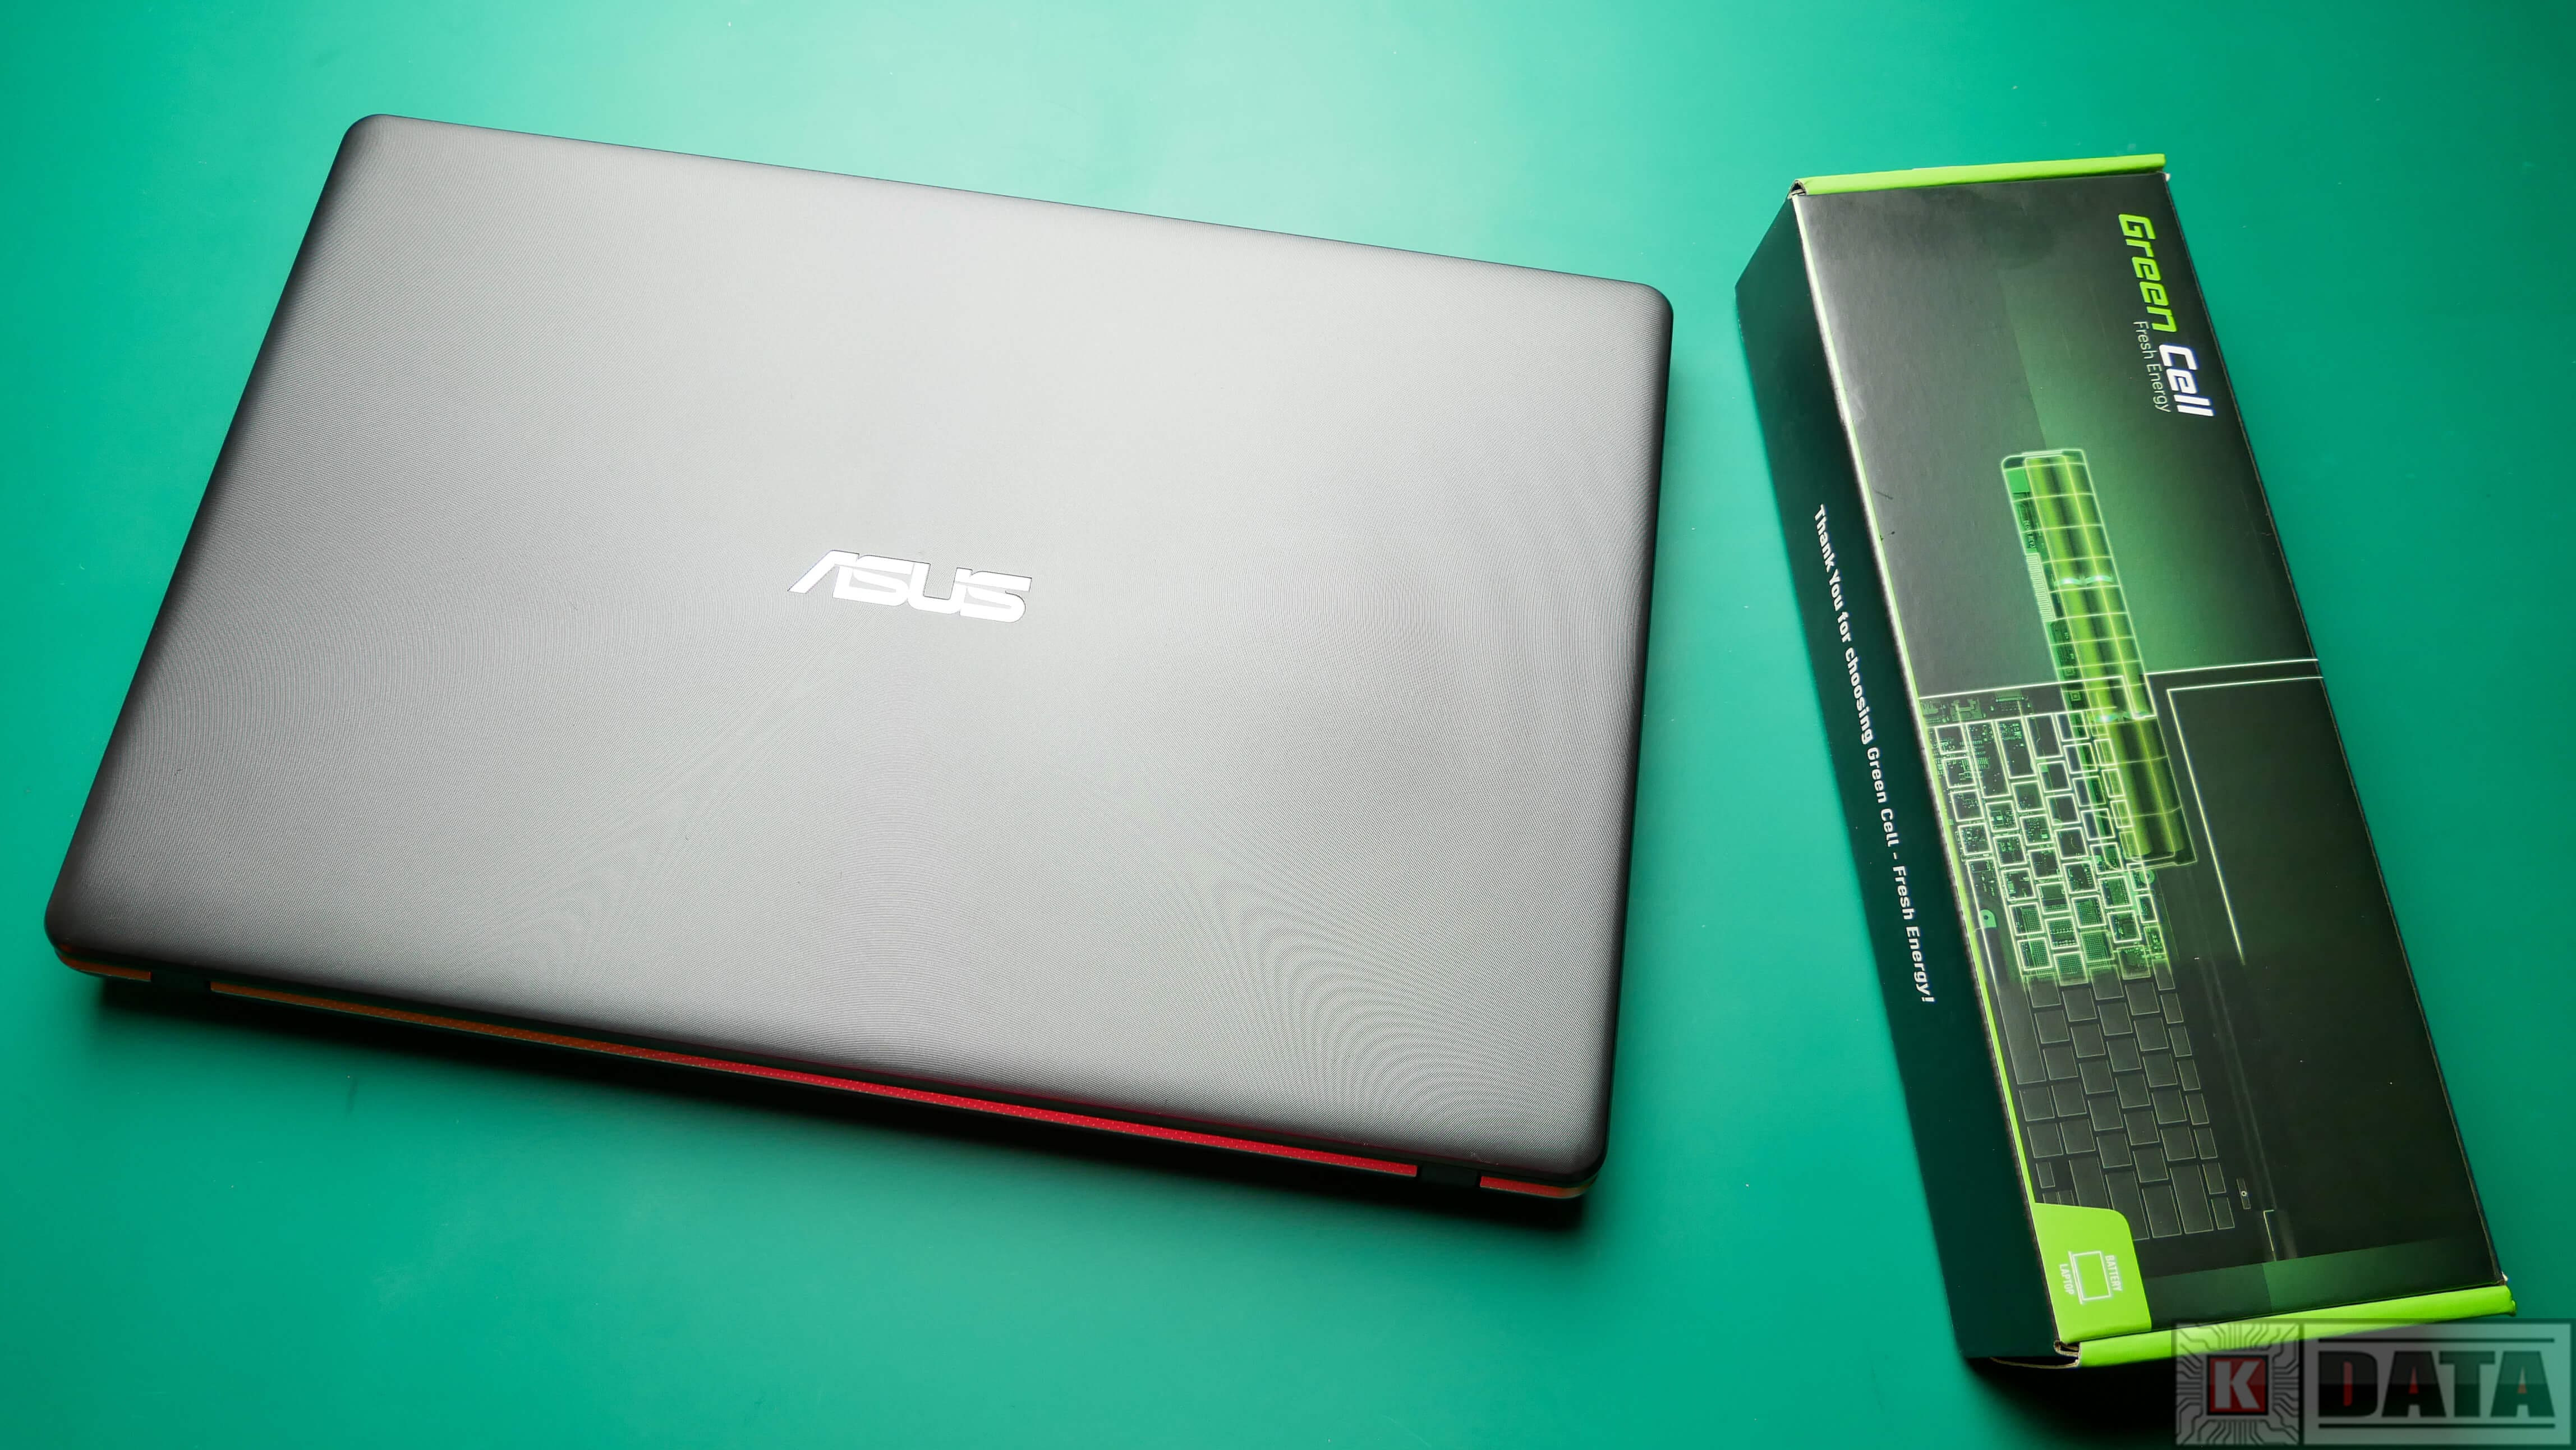 Notebook ASUS i bateria Green Cell